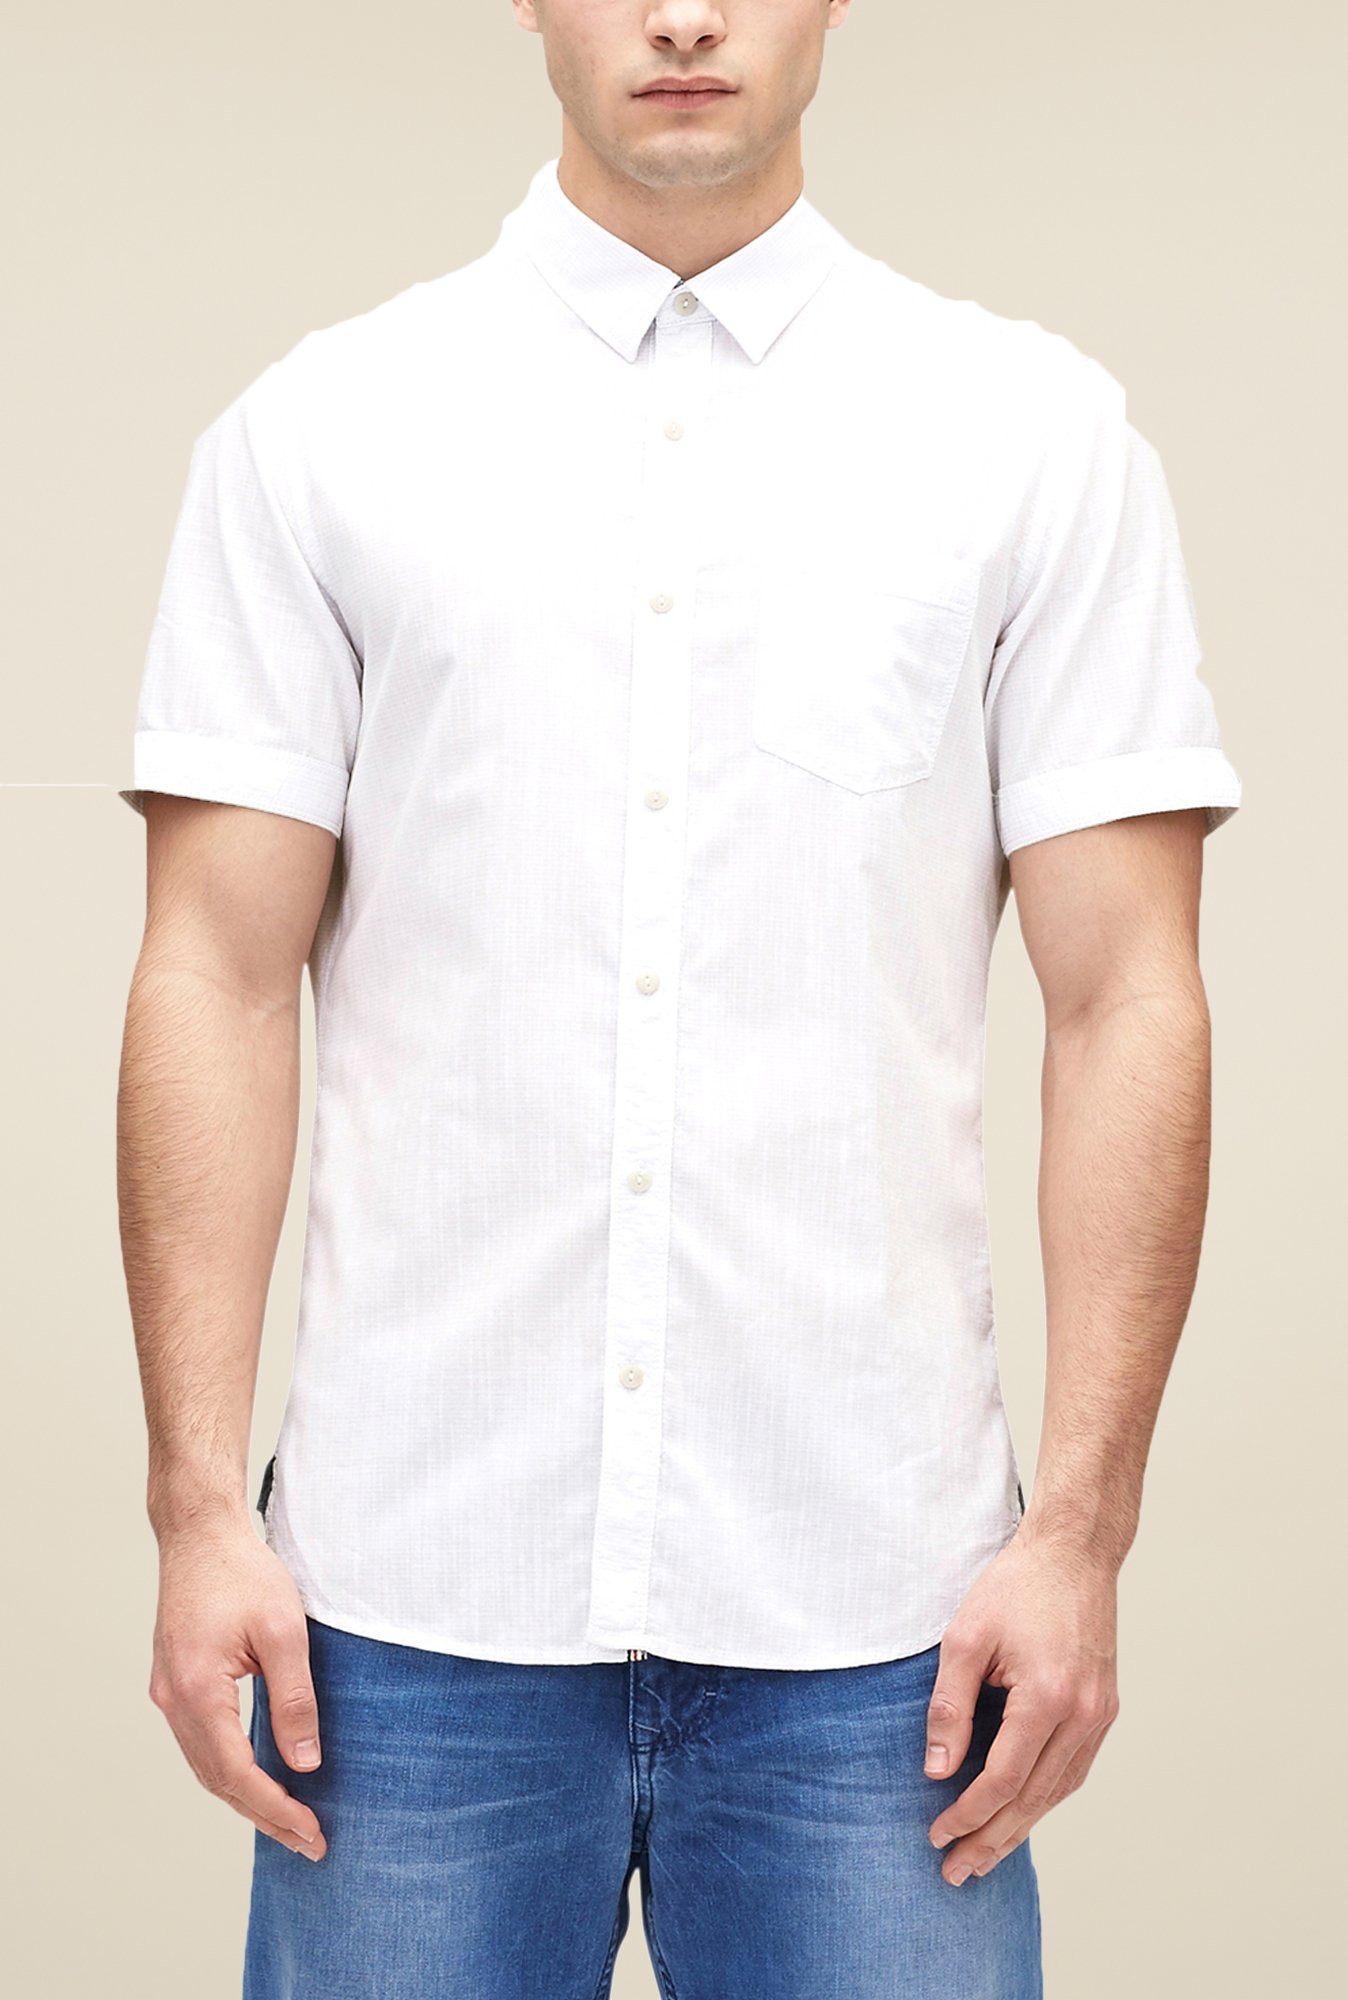 s.Oliver White Striped Shirt